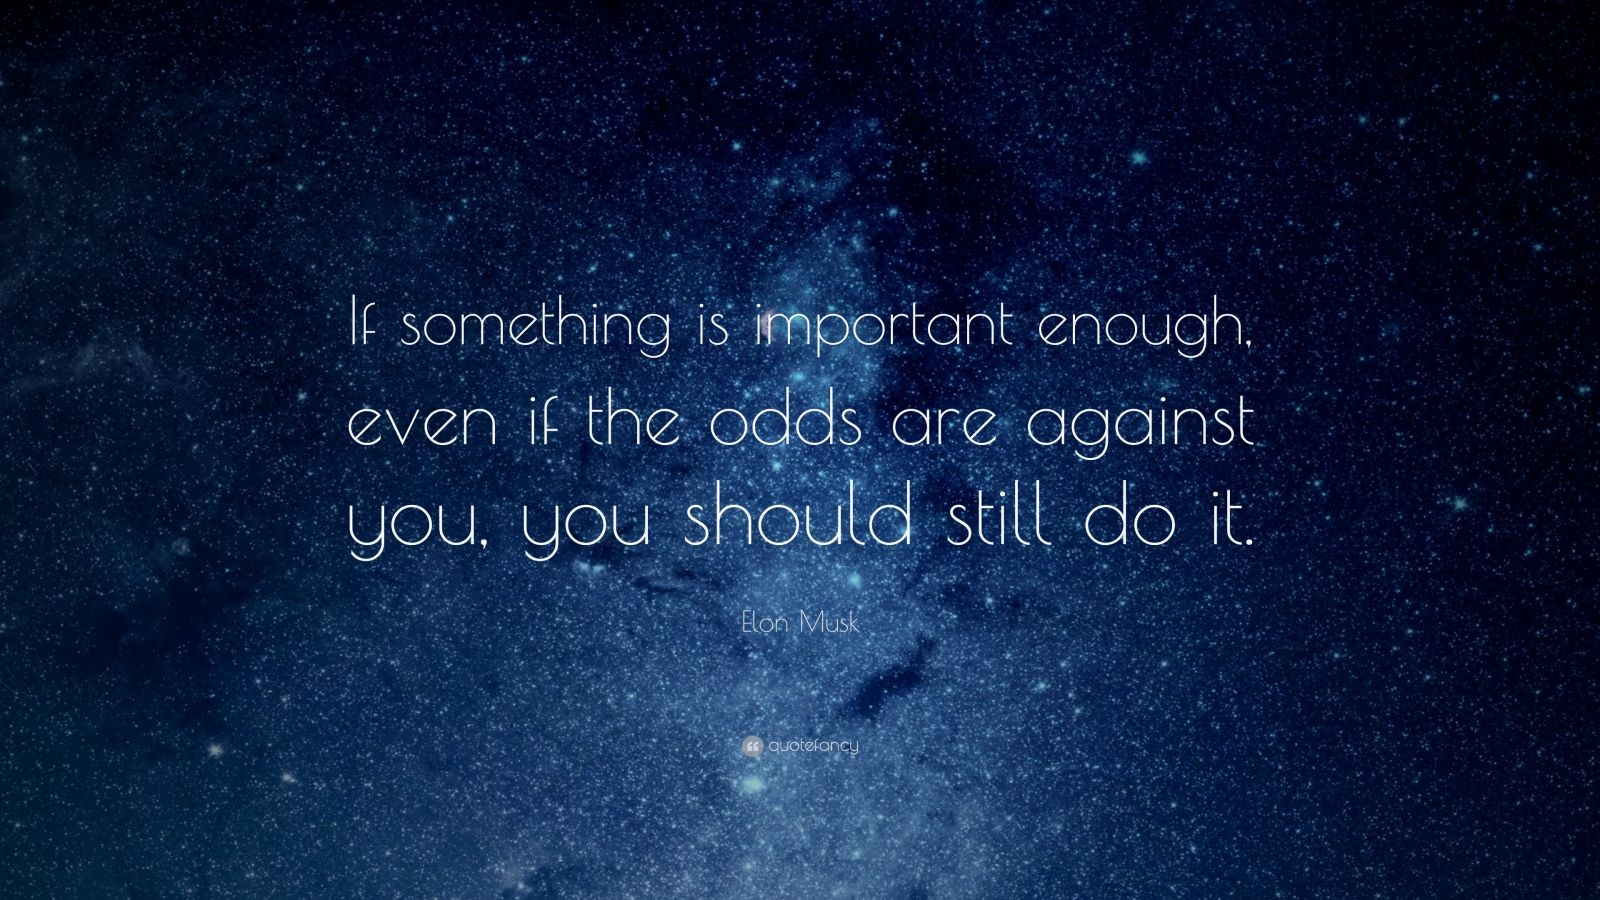 """Elon Musk Quote: """"If something is important enough, even if the odds are against you, you should still do it."""""""